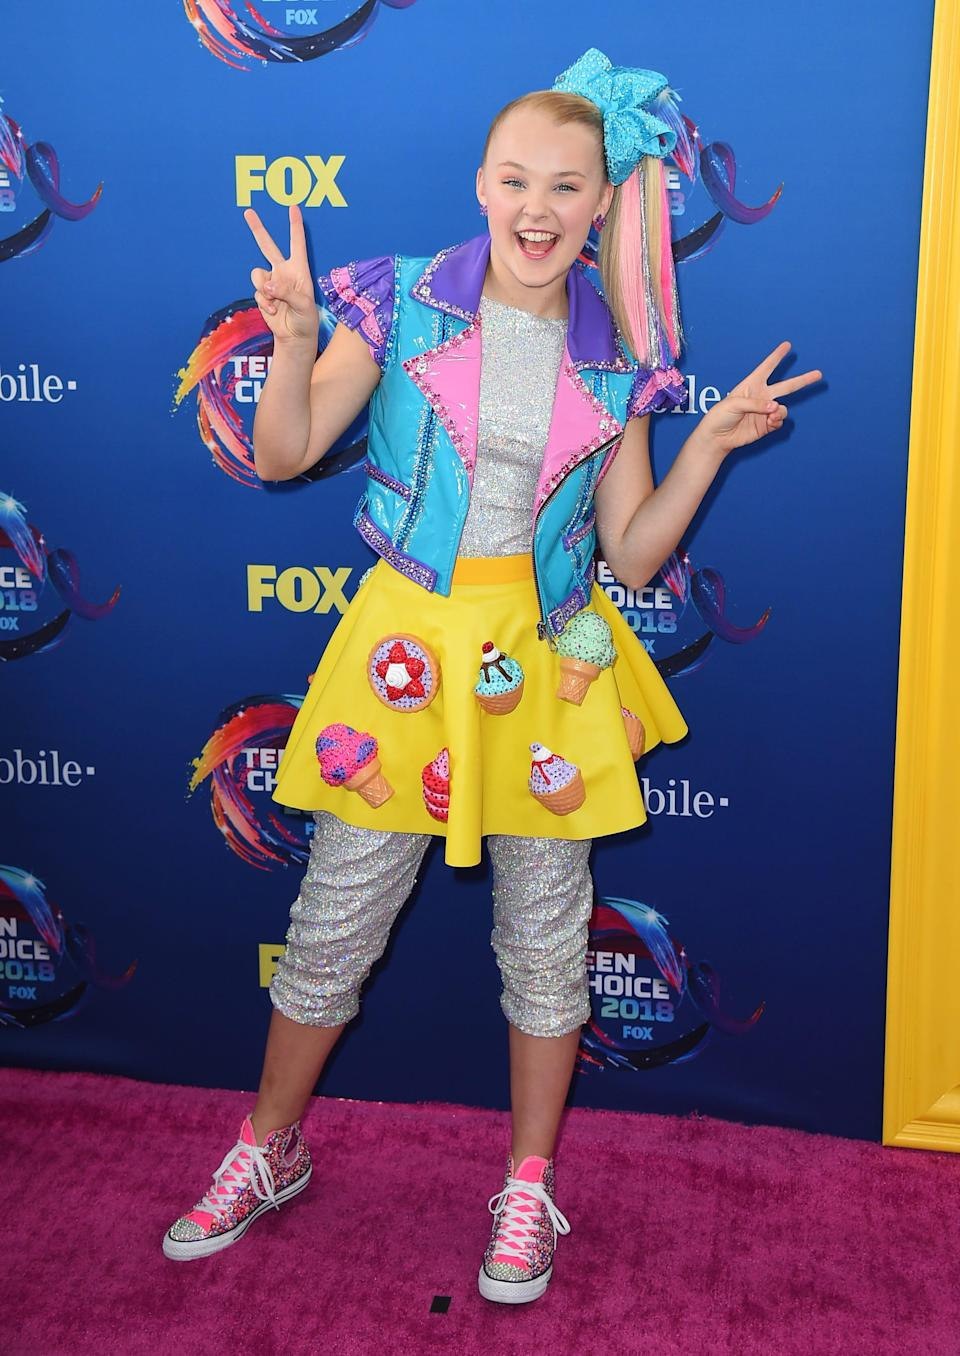 JoJo Siwa arrives at the Teen Choice Awards at The Forum on Sunday, Aug. 12, 2018, in Inglewood, Calif. (Photo by Jordan Strauss/Invision/AP) ORG XMIT: CAPM116